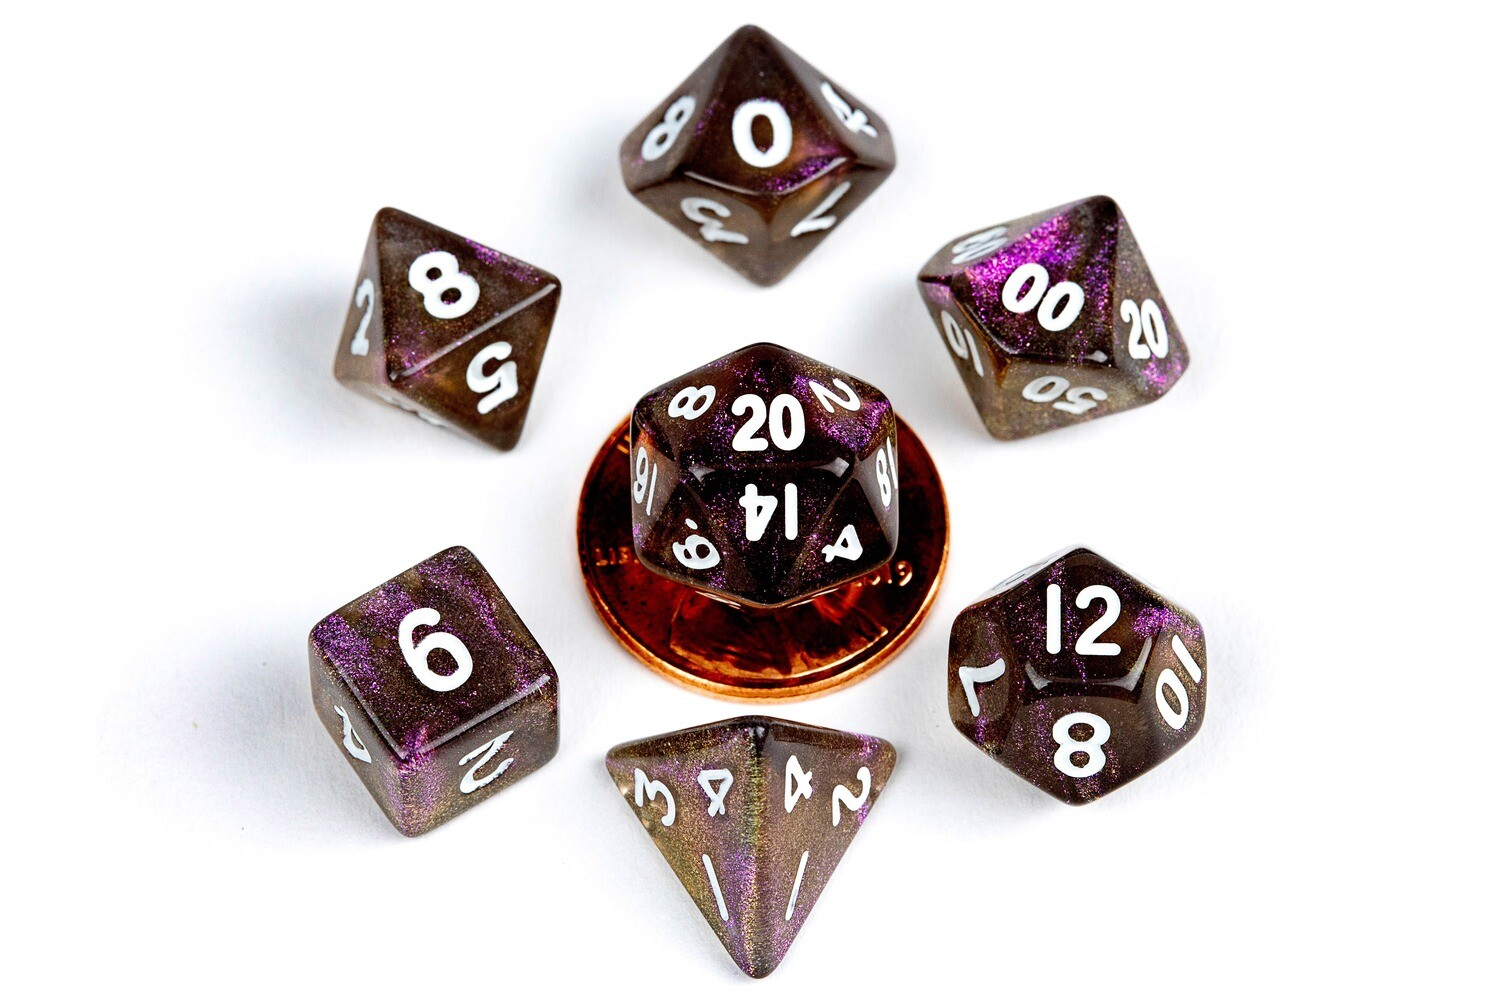 Stardust Supervolcano 10mm Mini Poly Dice Set RPG Tabletop Gaming Roleplay Cards Board